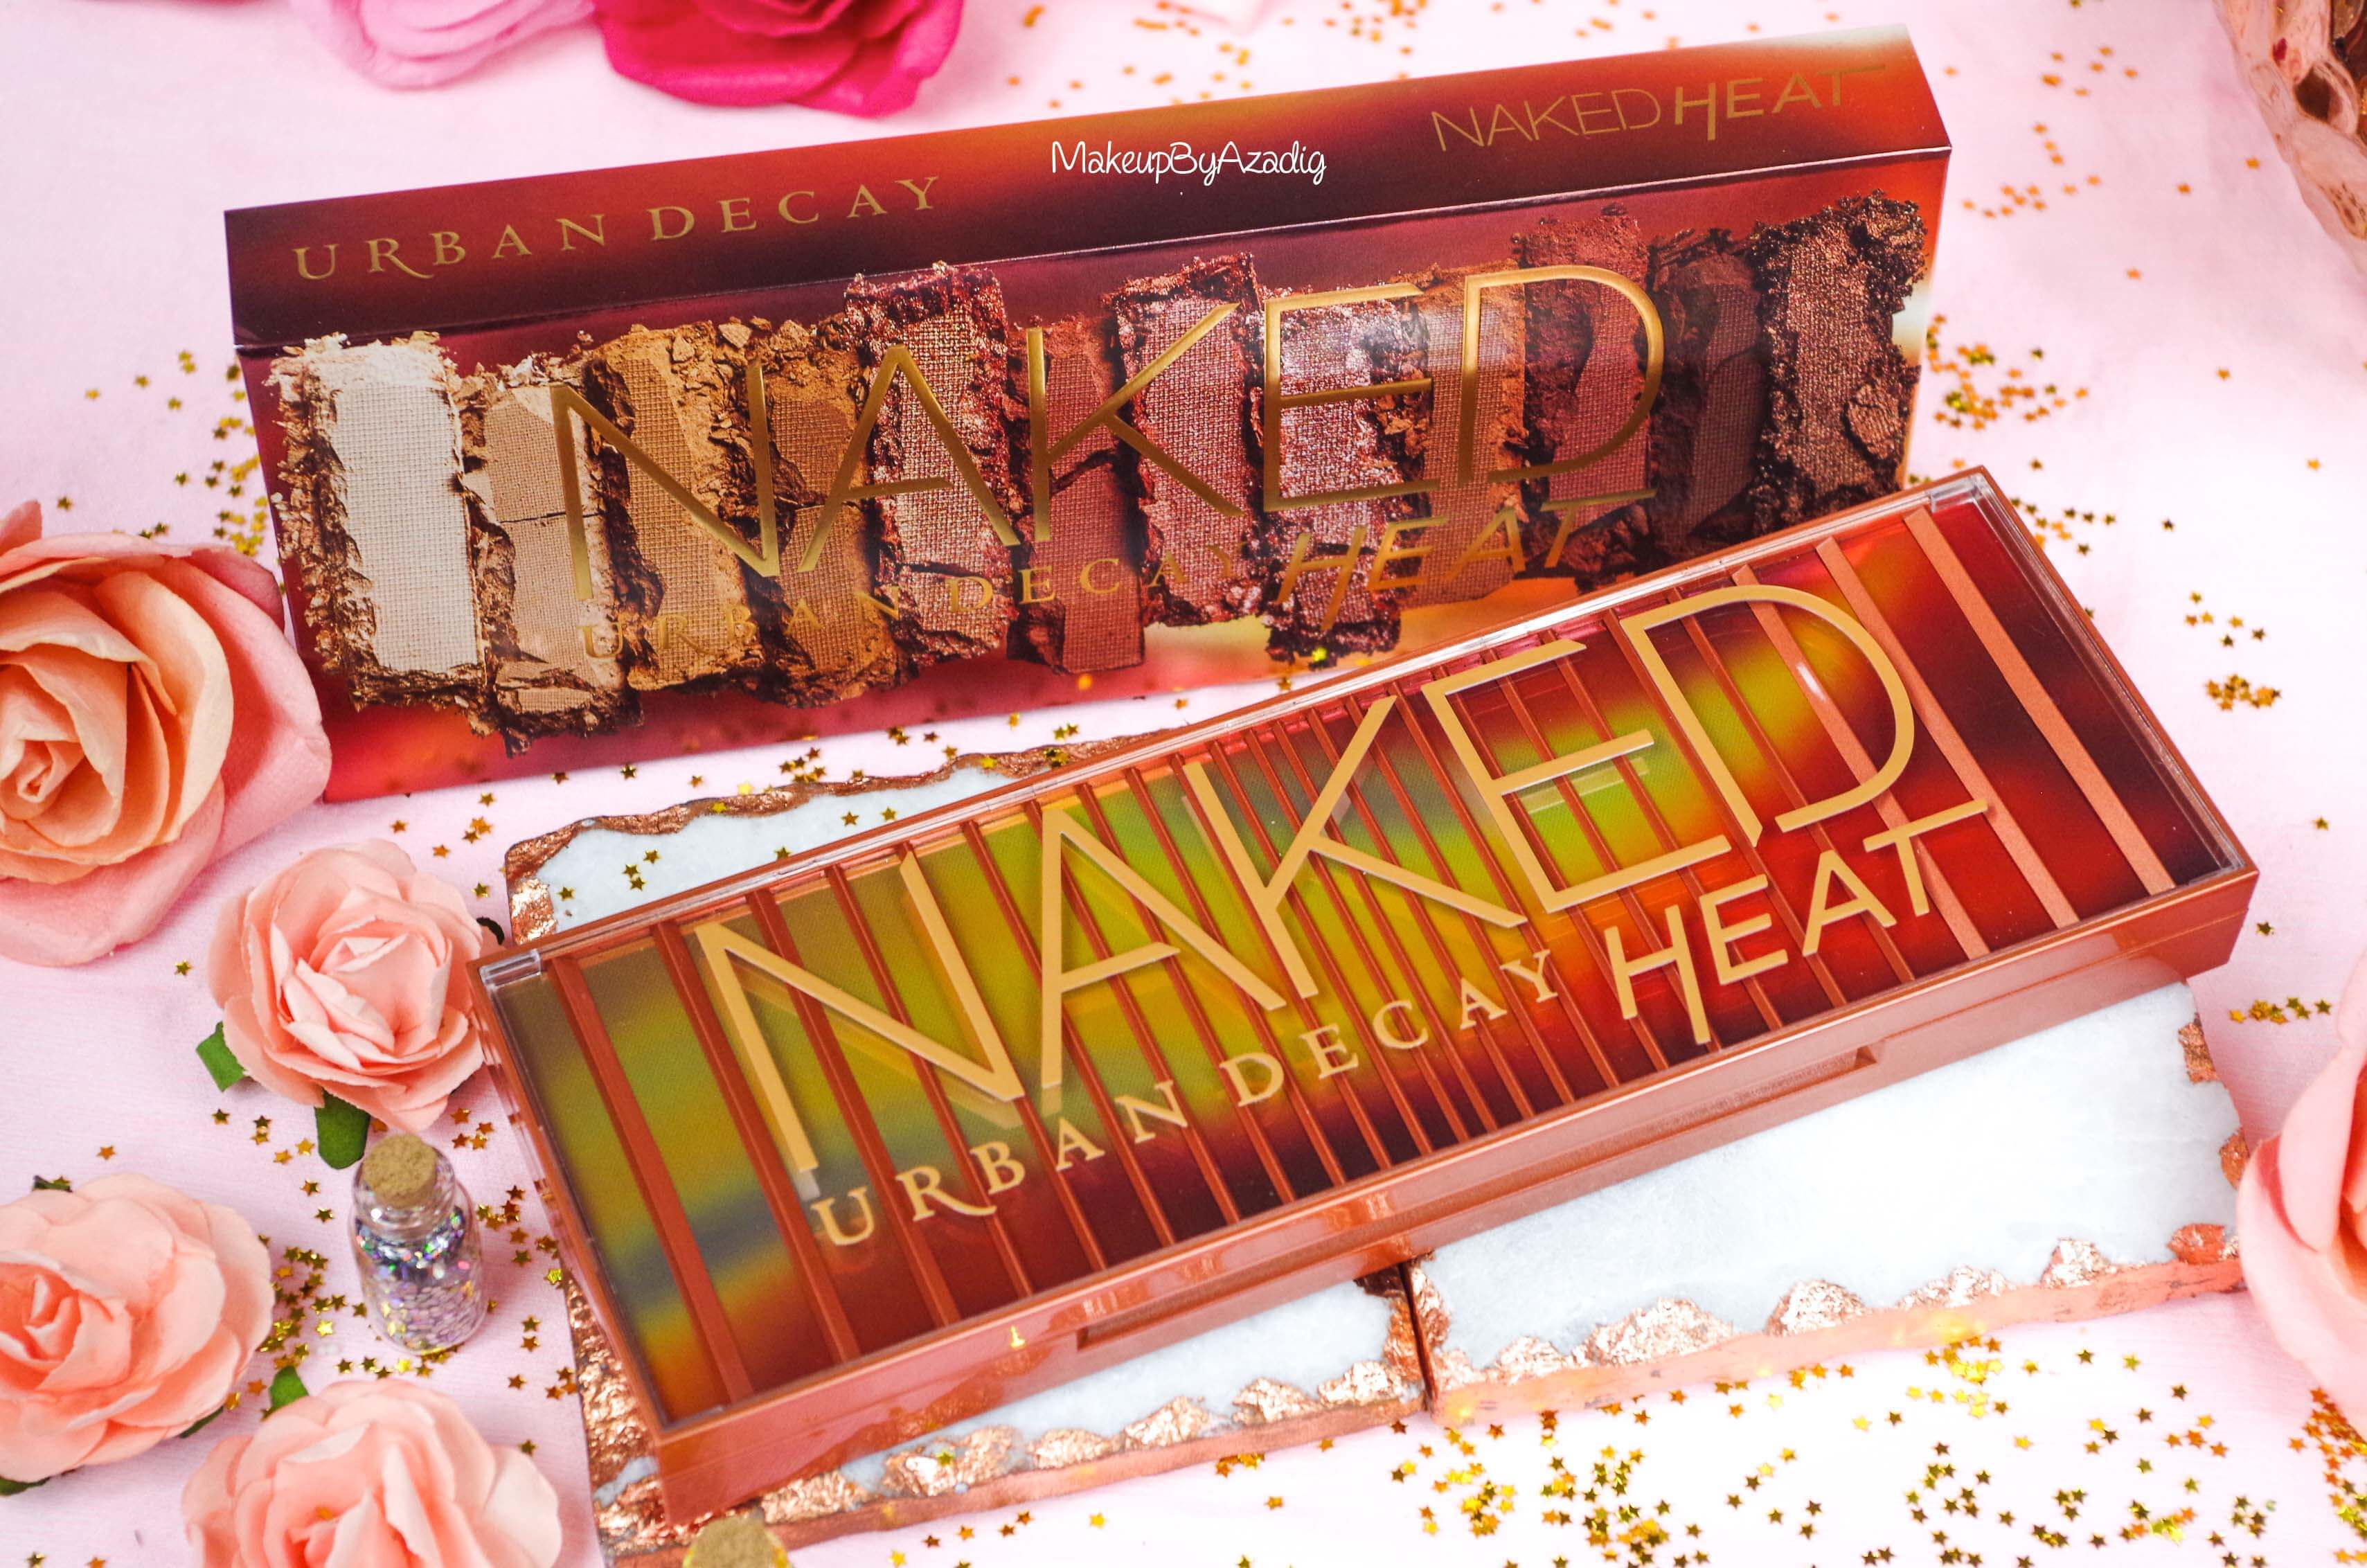 revue-review-nouvelle-palette-naked-heat-urban-decay-sephora-avis-prix-france-makeupbyazadig-swatch-chauds